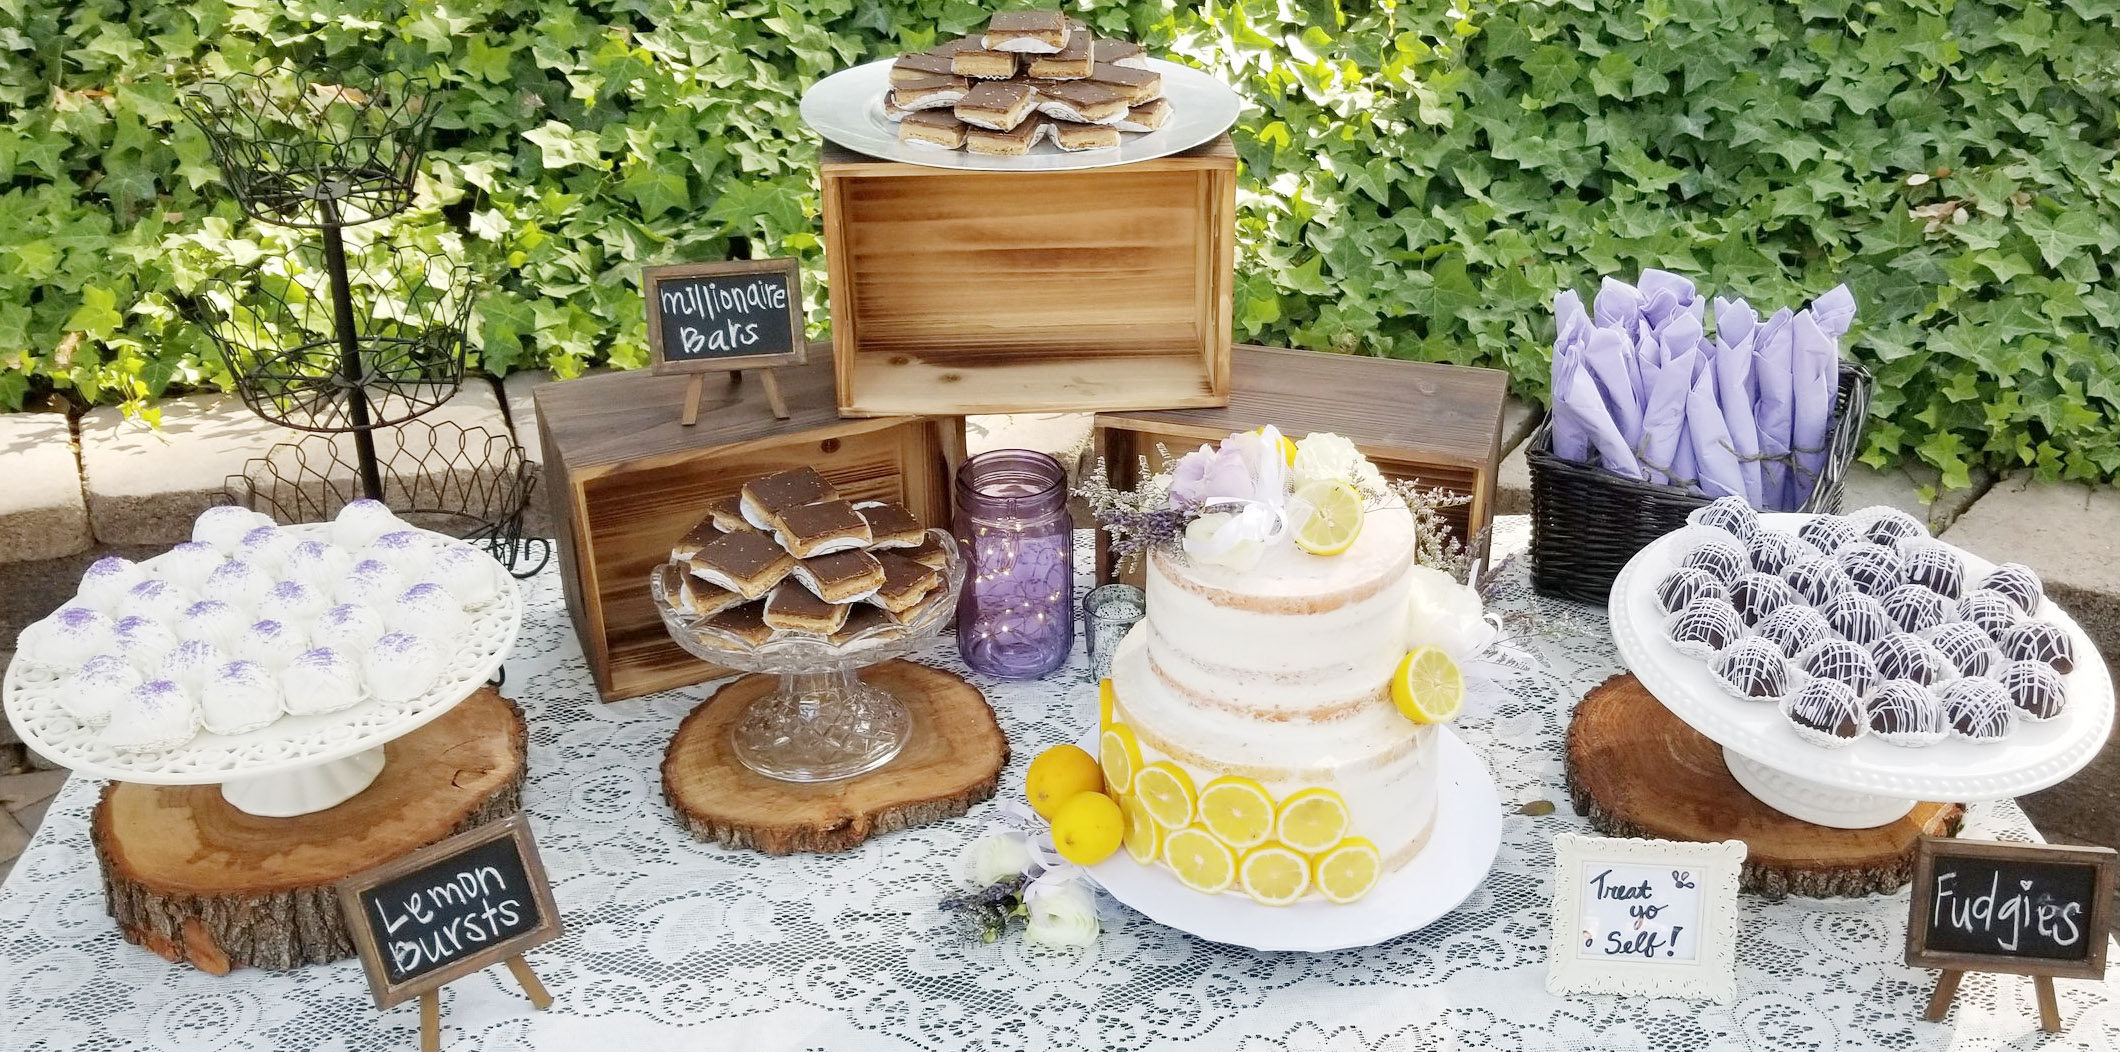 Lemon & Chocolate Wedding Cake Display Table